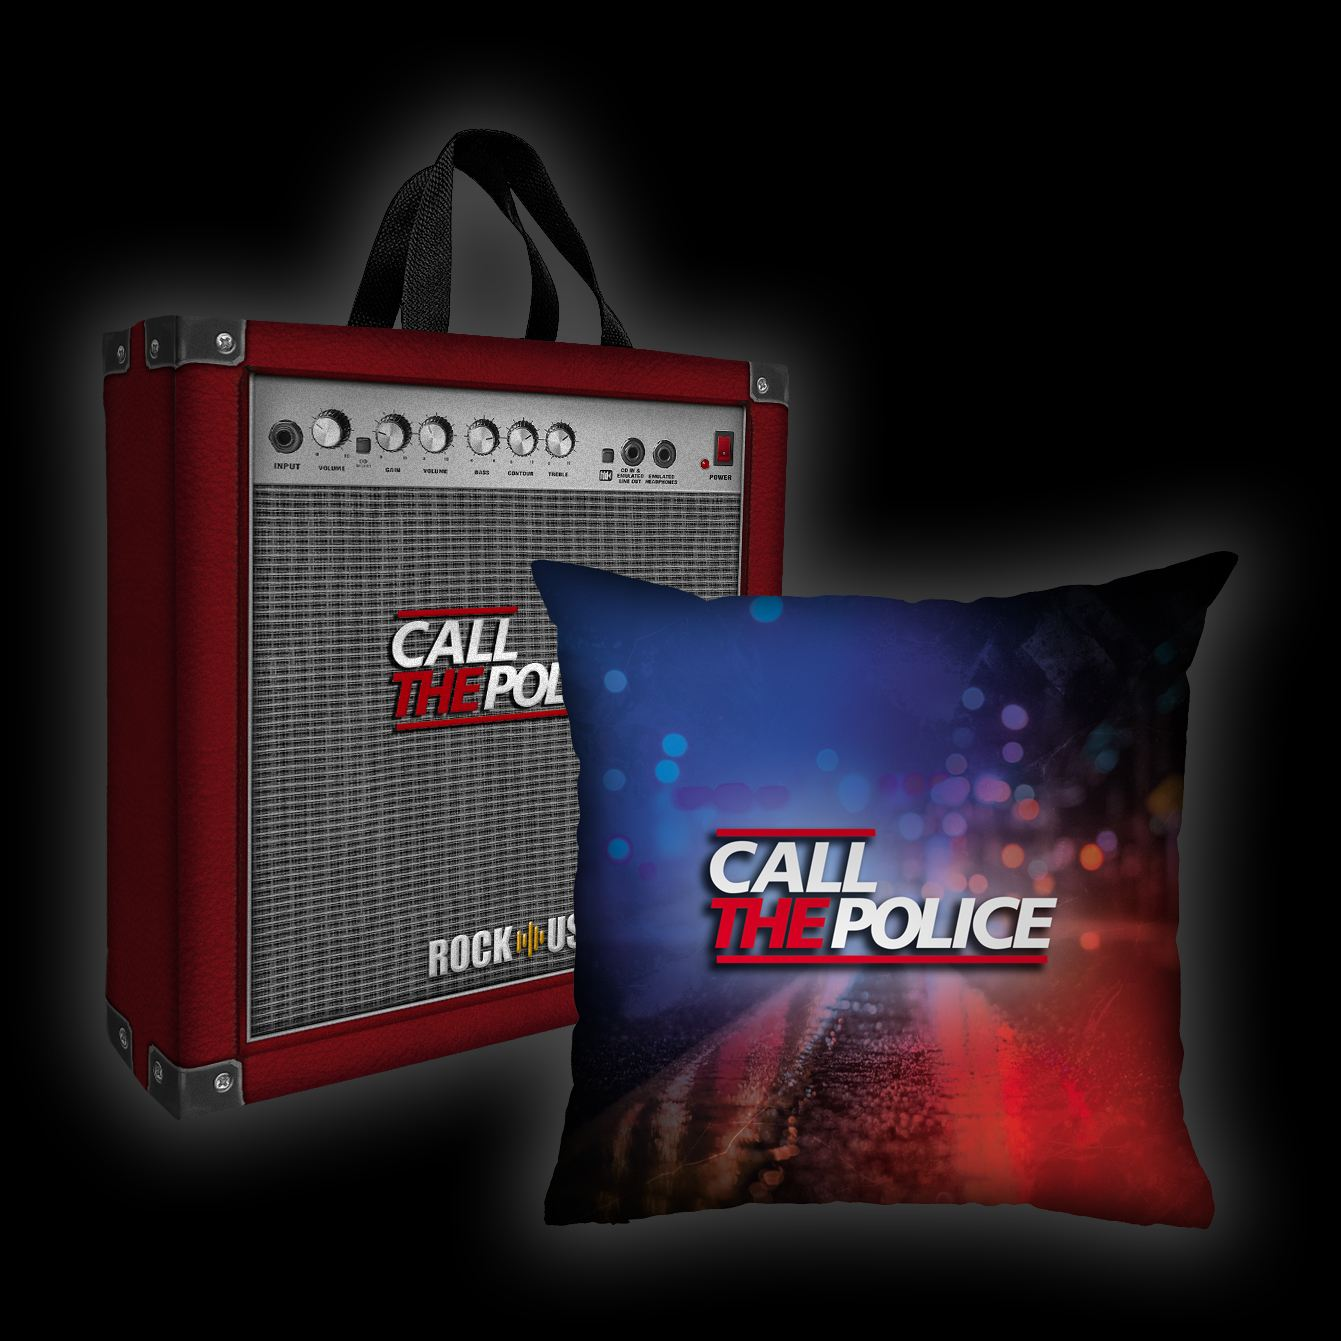 Kit Almofada + Sacola Call the Police - Lights (Color)